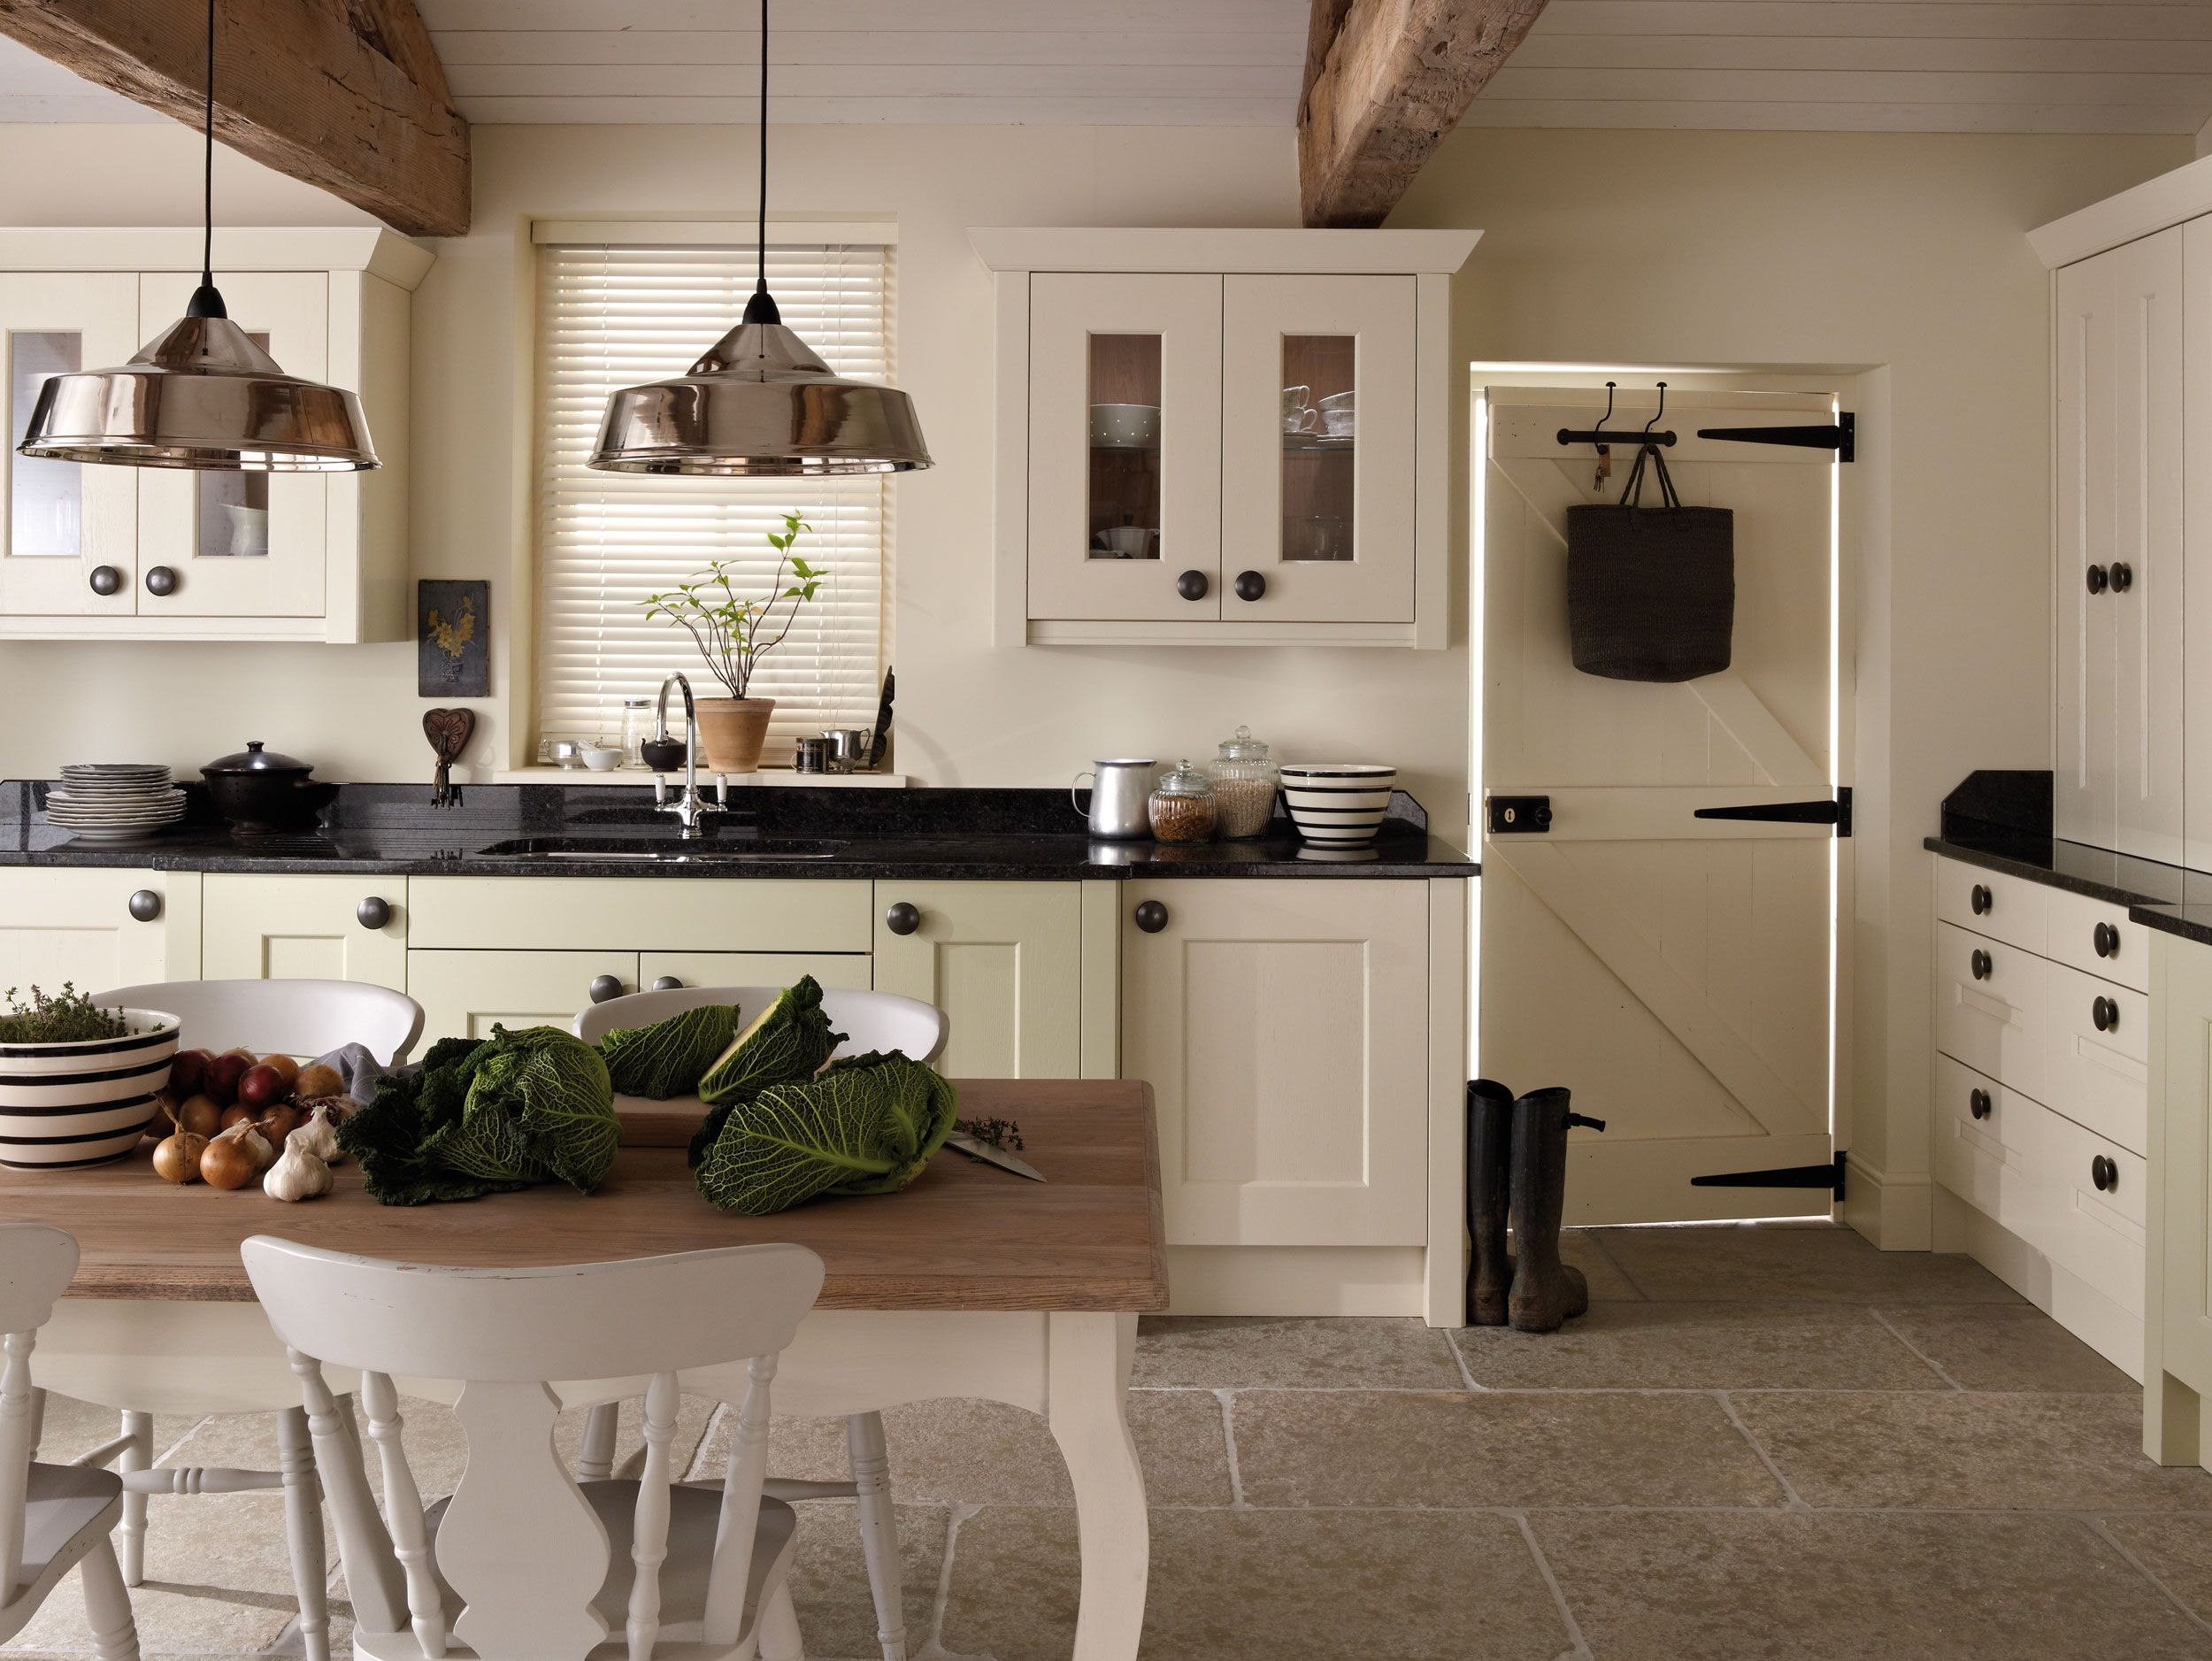 10 Traditional Kitchens You'll Love #traditionalkitchen